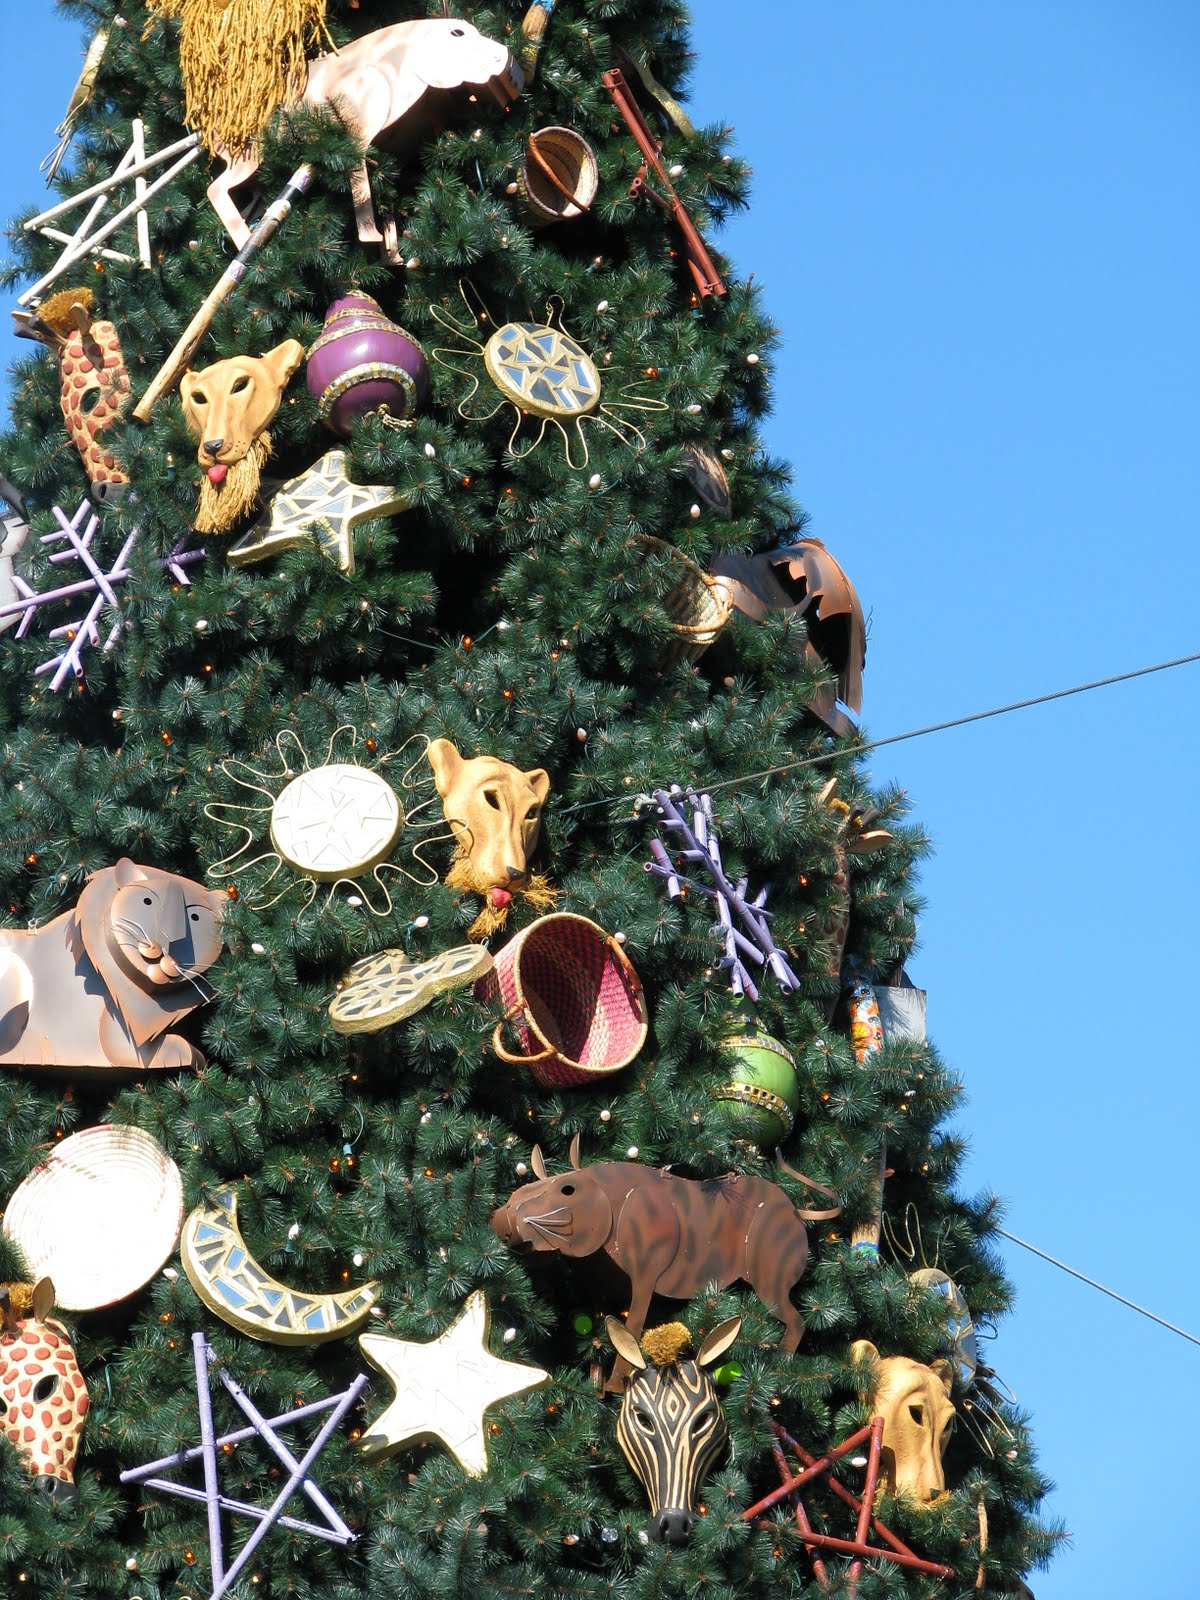 if you are able to visit disney world this christmas holiday season take the time to notice the decorations that adorn the remarkable trees that you will - When Is Disney World Decorated For Christmas